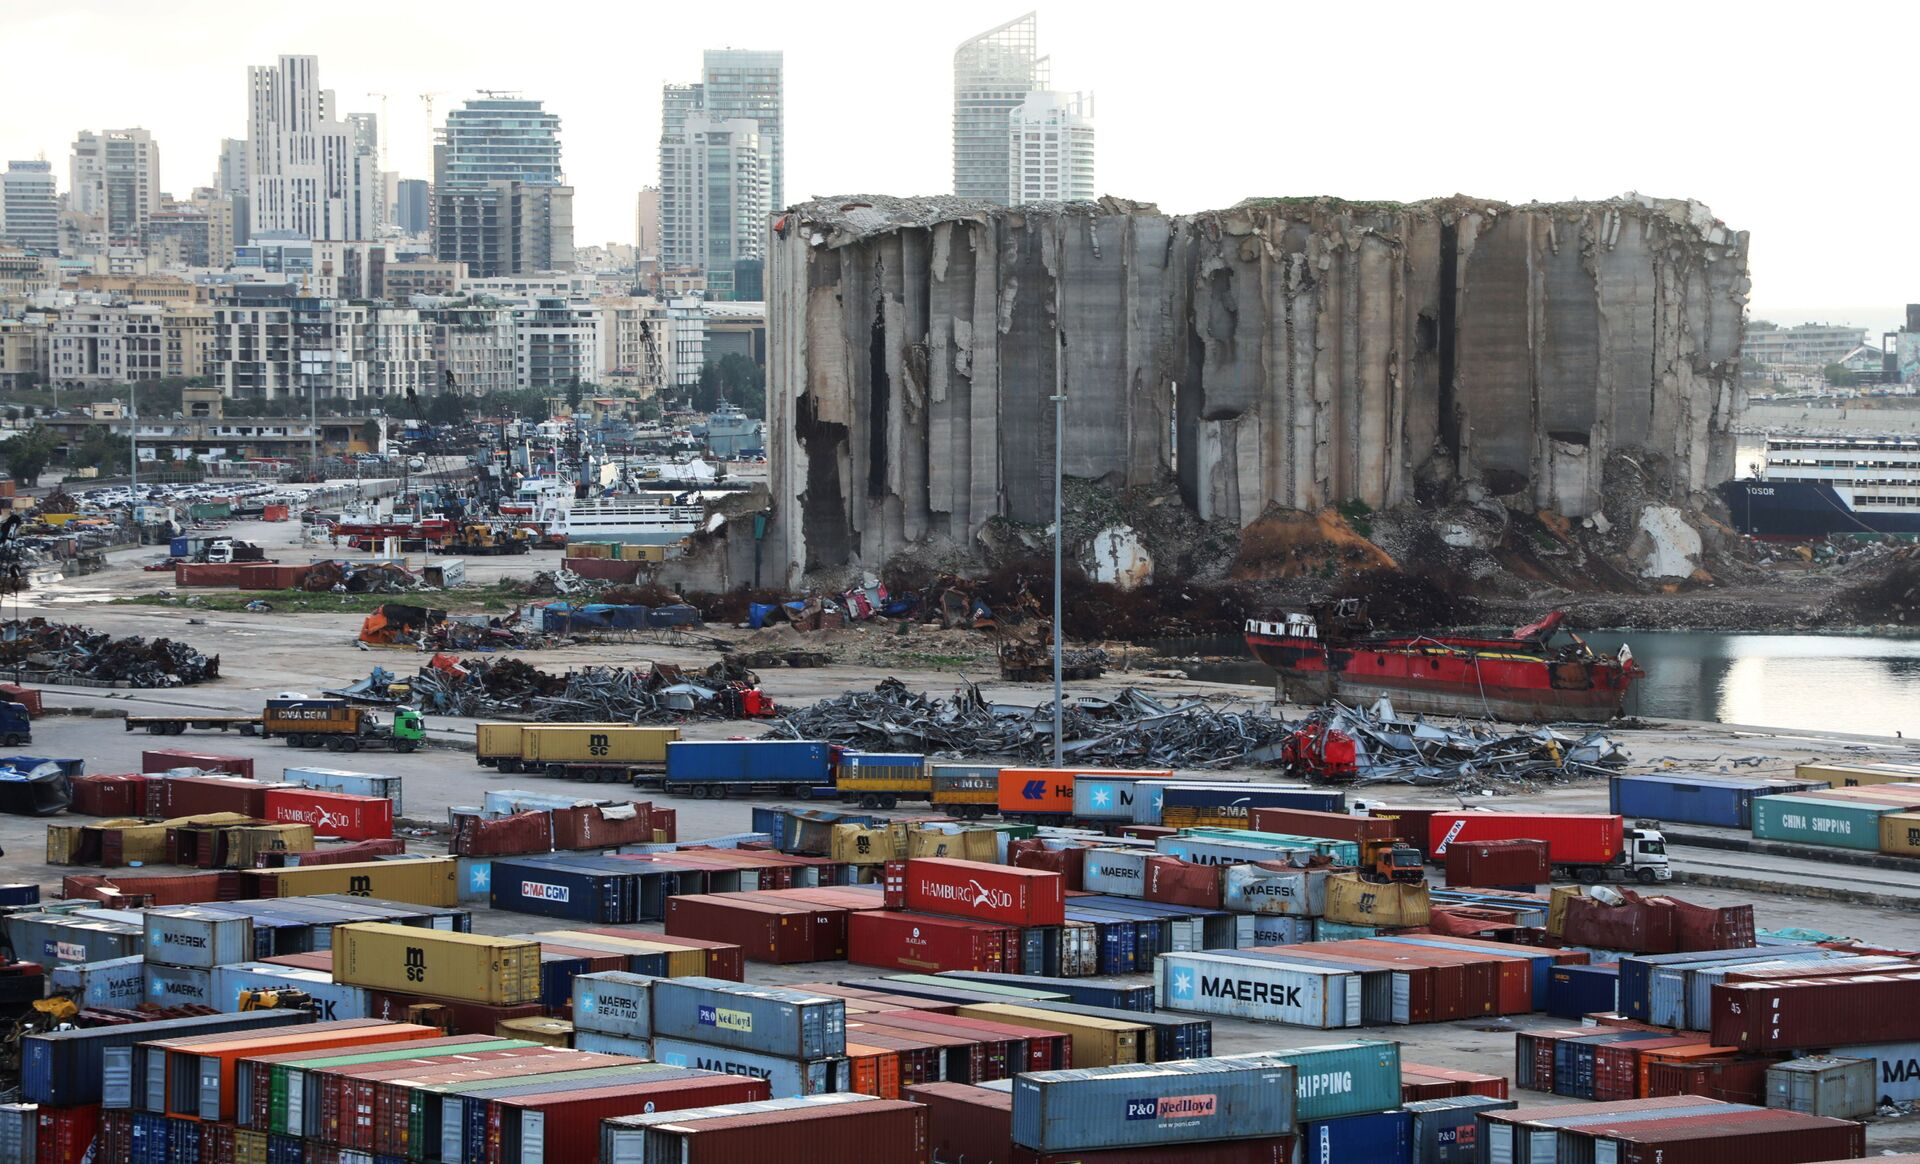 A view shows the site of the August 4 explosion at Beirut port, Lebanon February 18, 2021 - Sputnik International, 1920, 07.09.2021